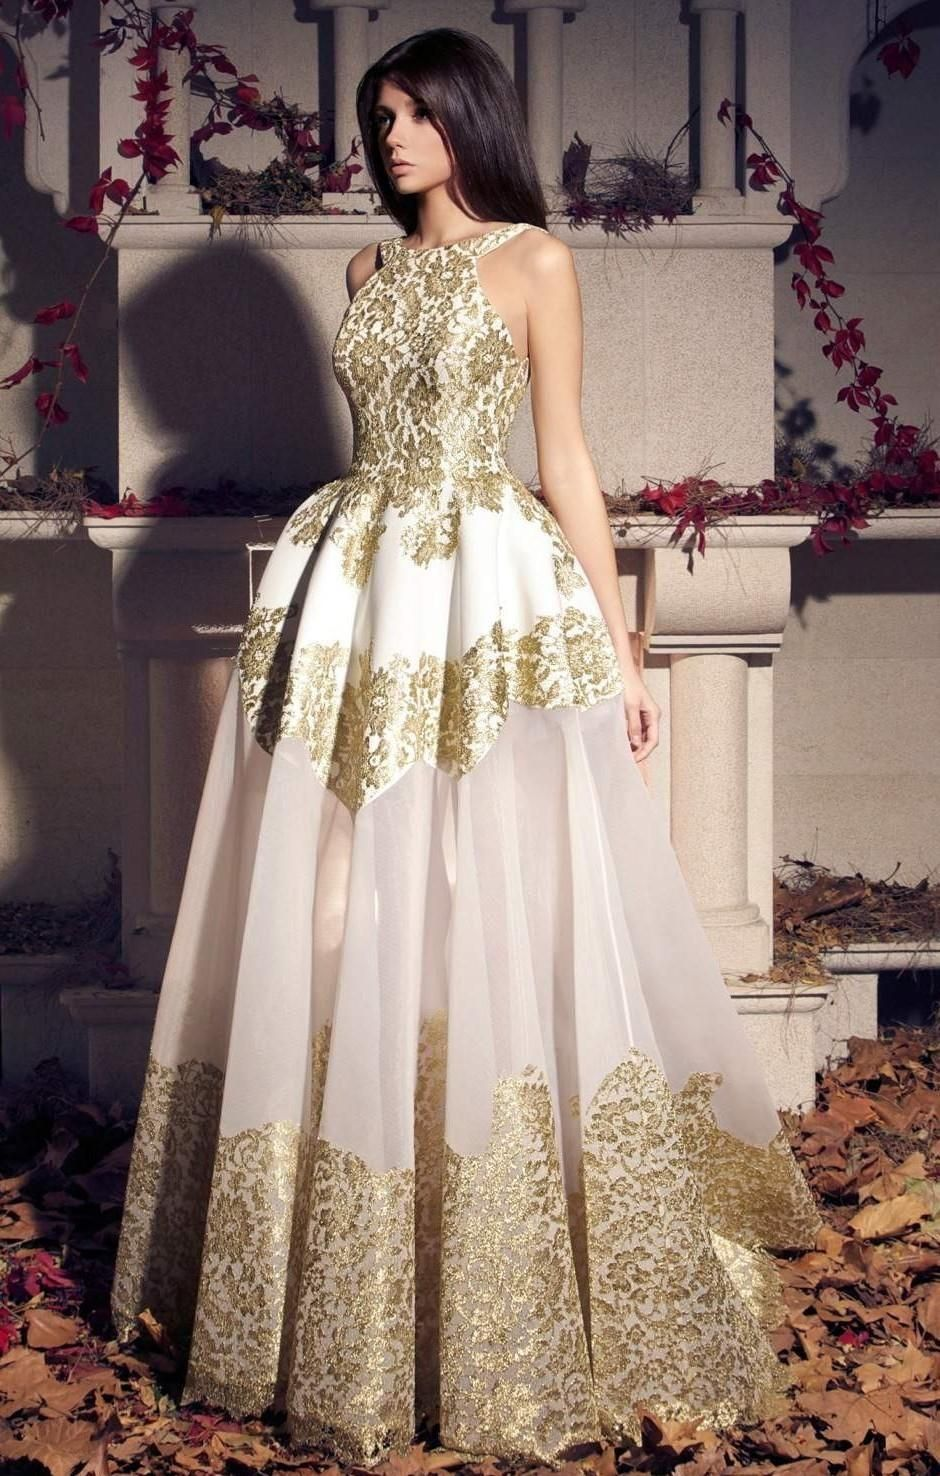 2016 Elegant White And Gold Lace Wedding Dresses A Line Strapless Lace Up Back Chapel Train Off The Shoulder Real Photos Bridal Gowns Affordable Dresses Bridal Dresses Online From Caradress, $155.78| Dhgate.Com